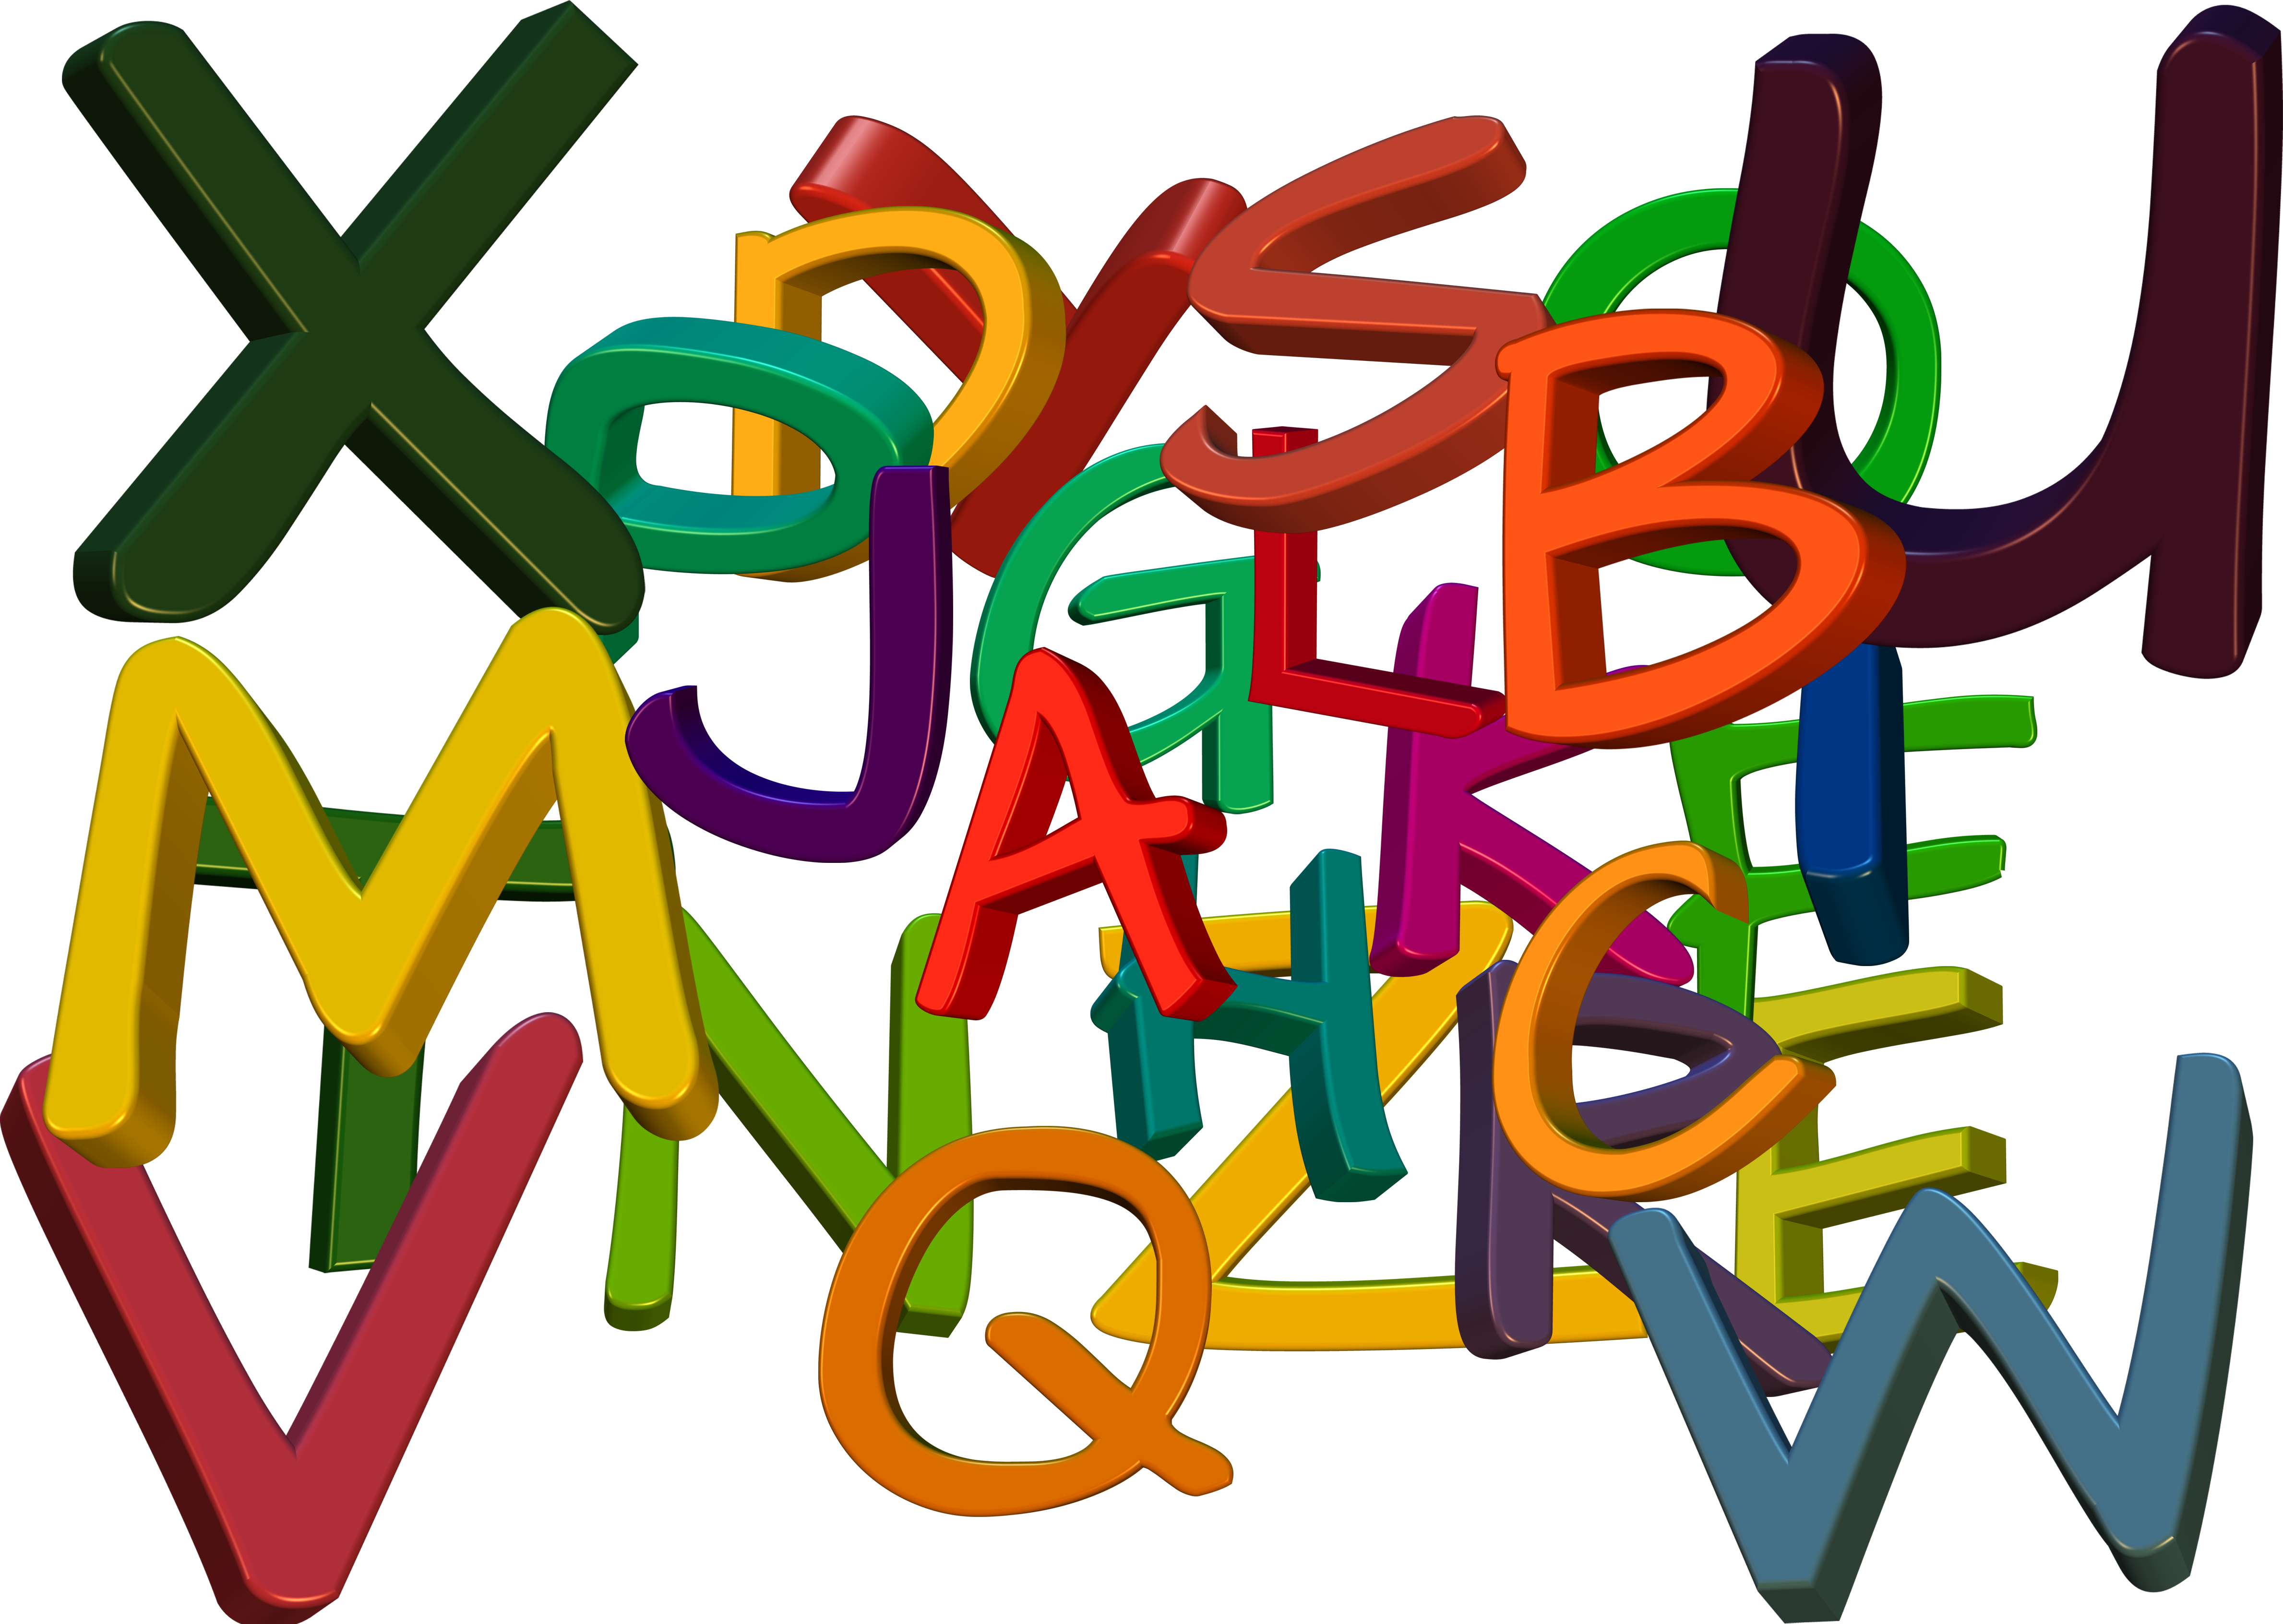 Abc colorful letters free. Literacy clipart alphabet